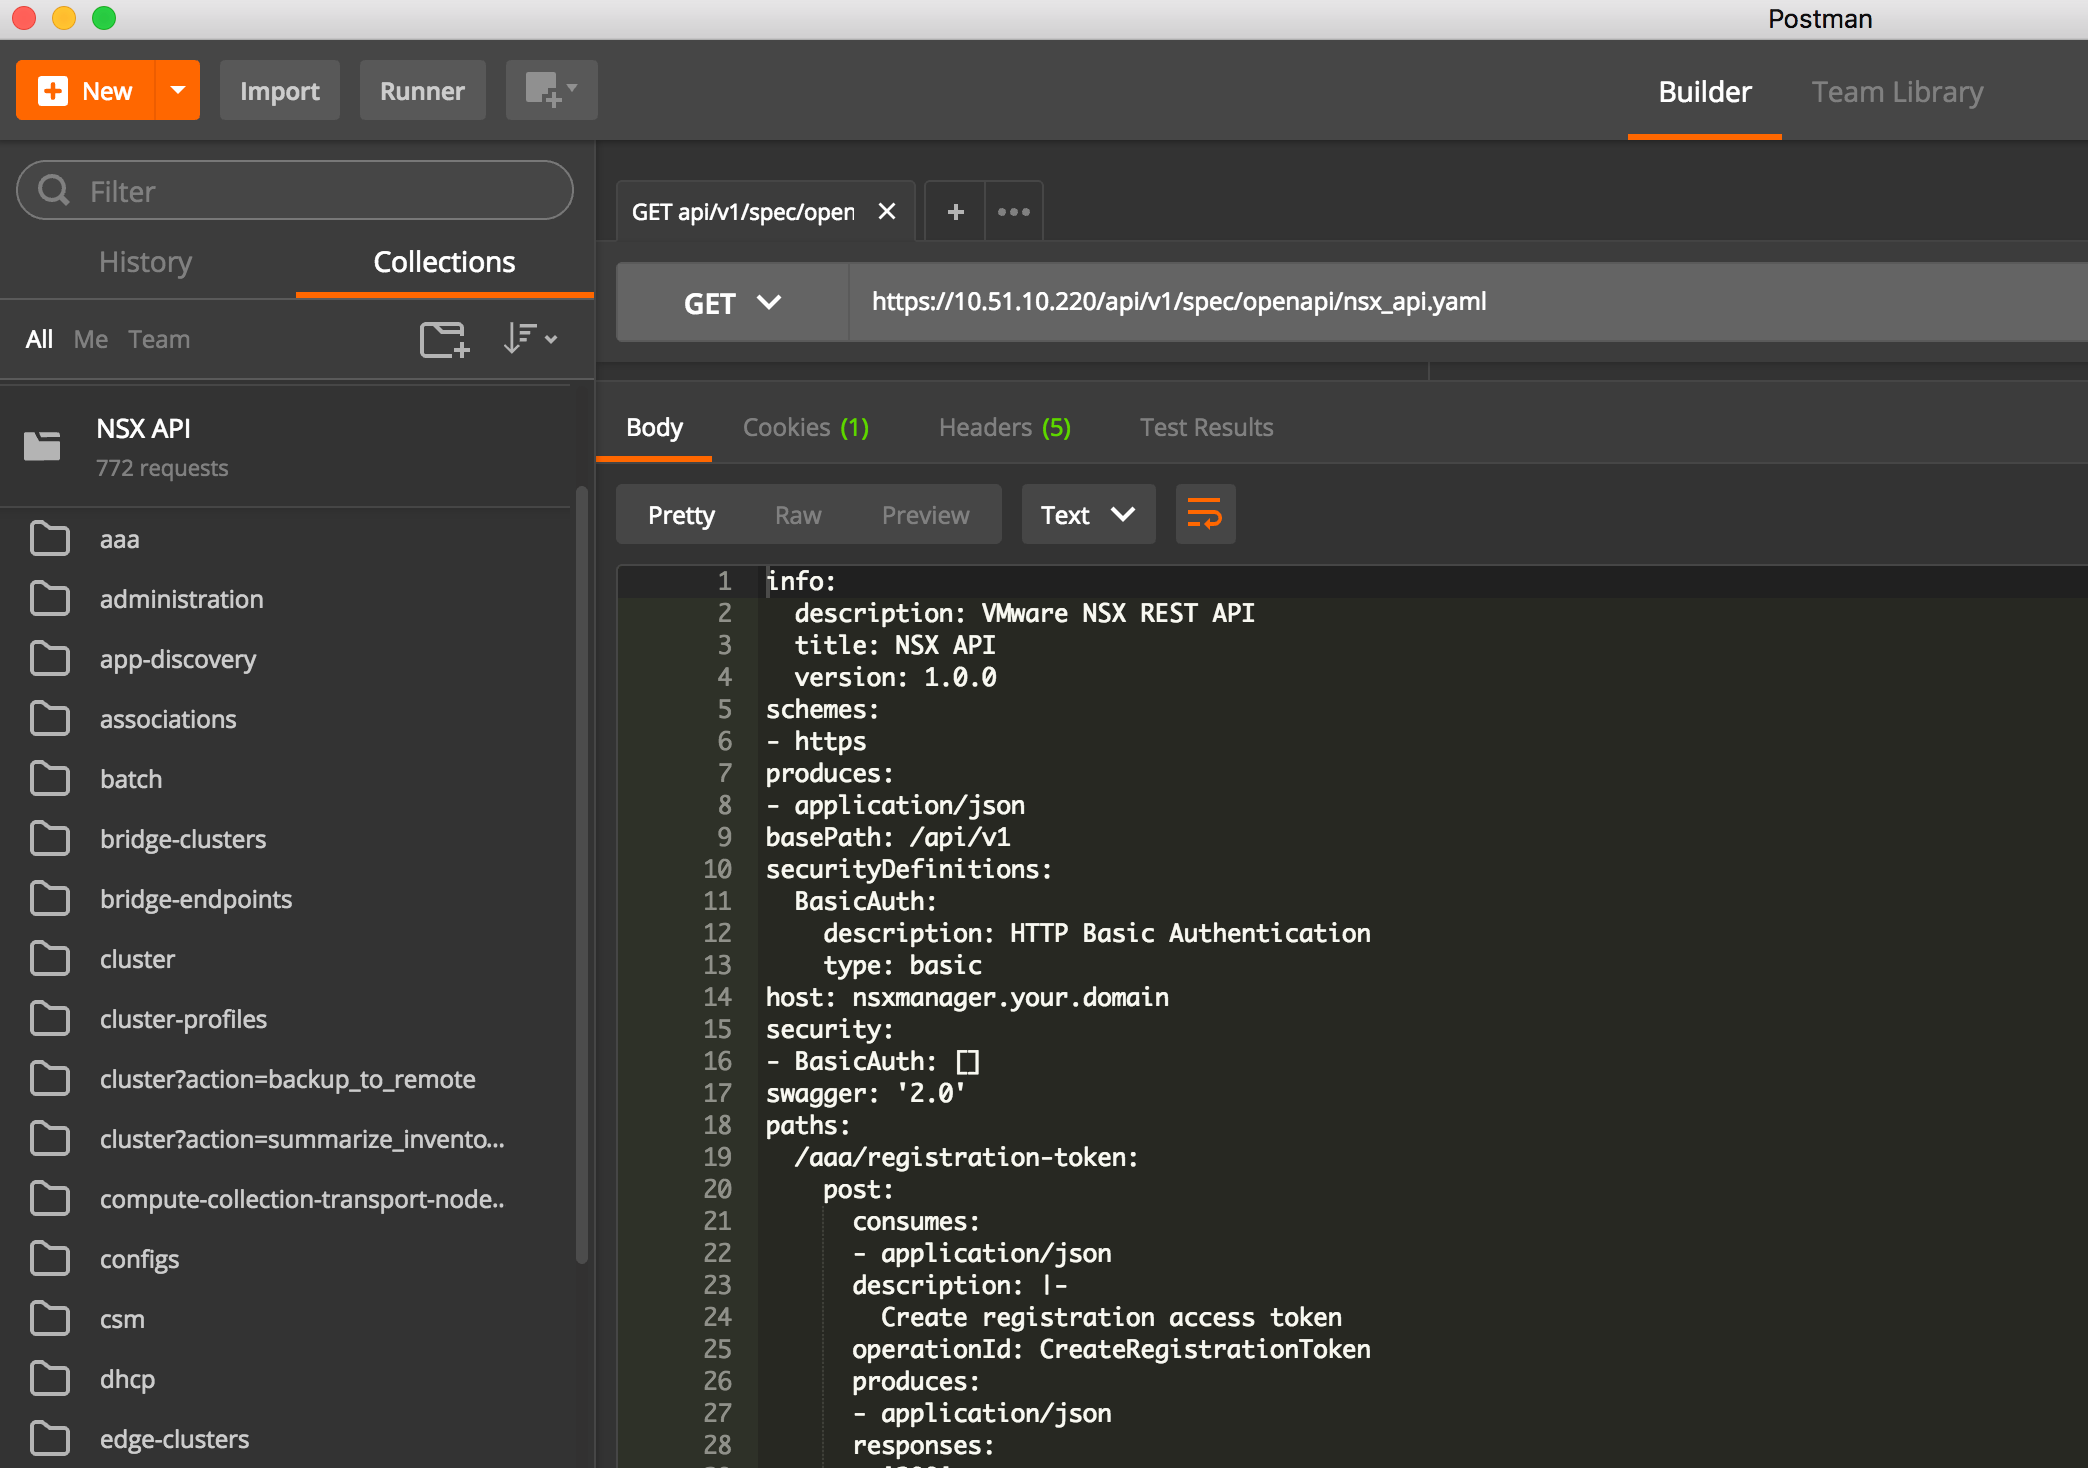 NSX-T API: Embedded Documentation and Postman Collection